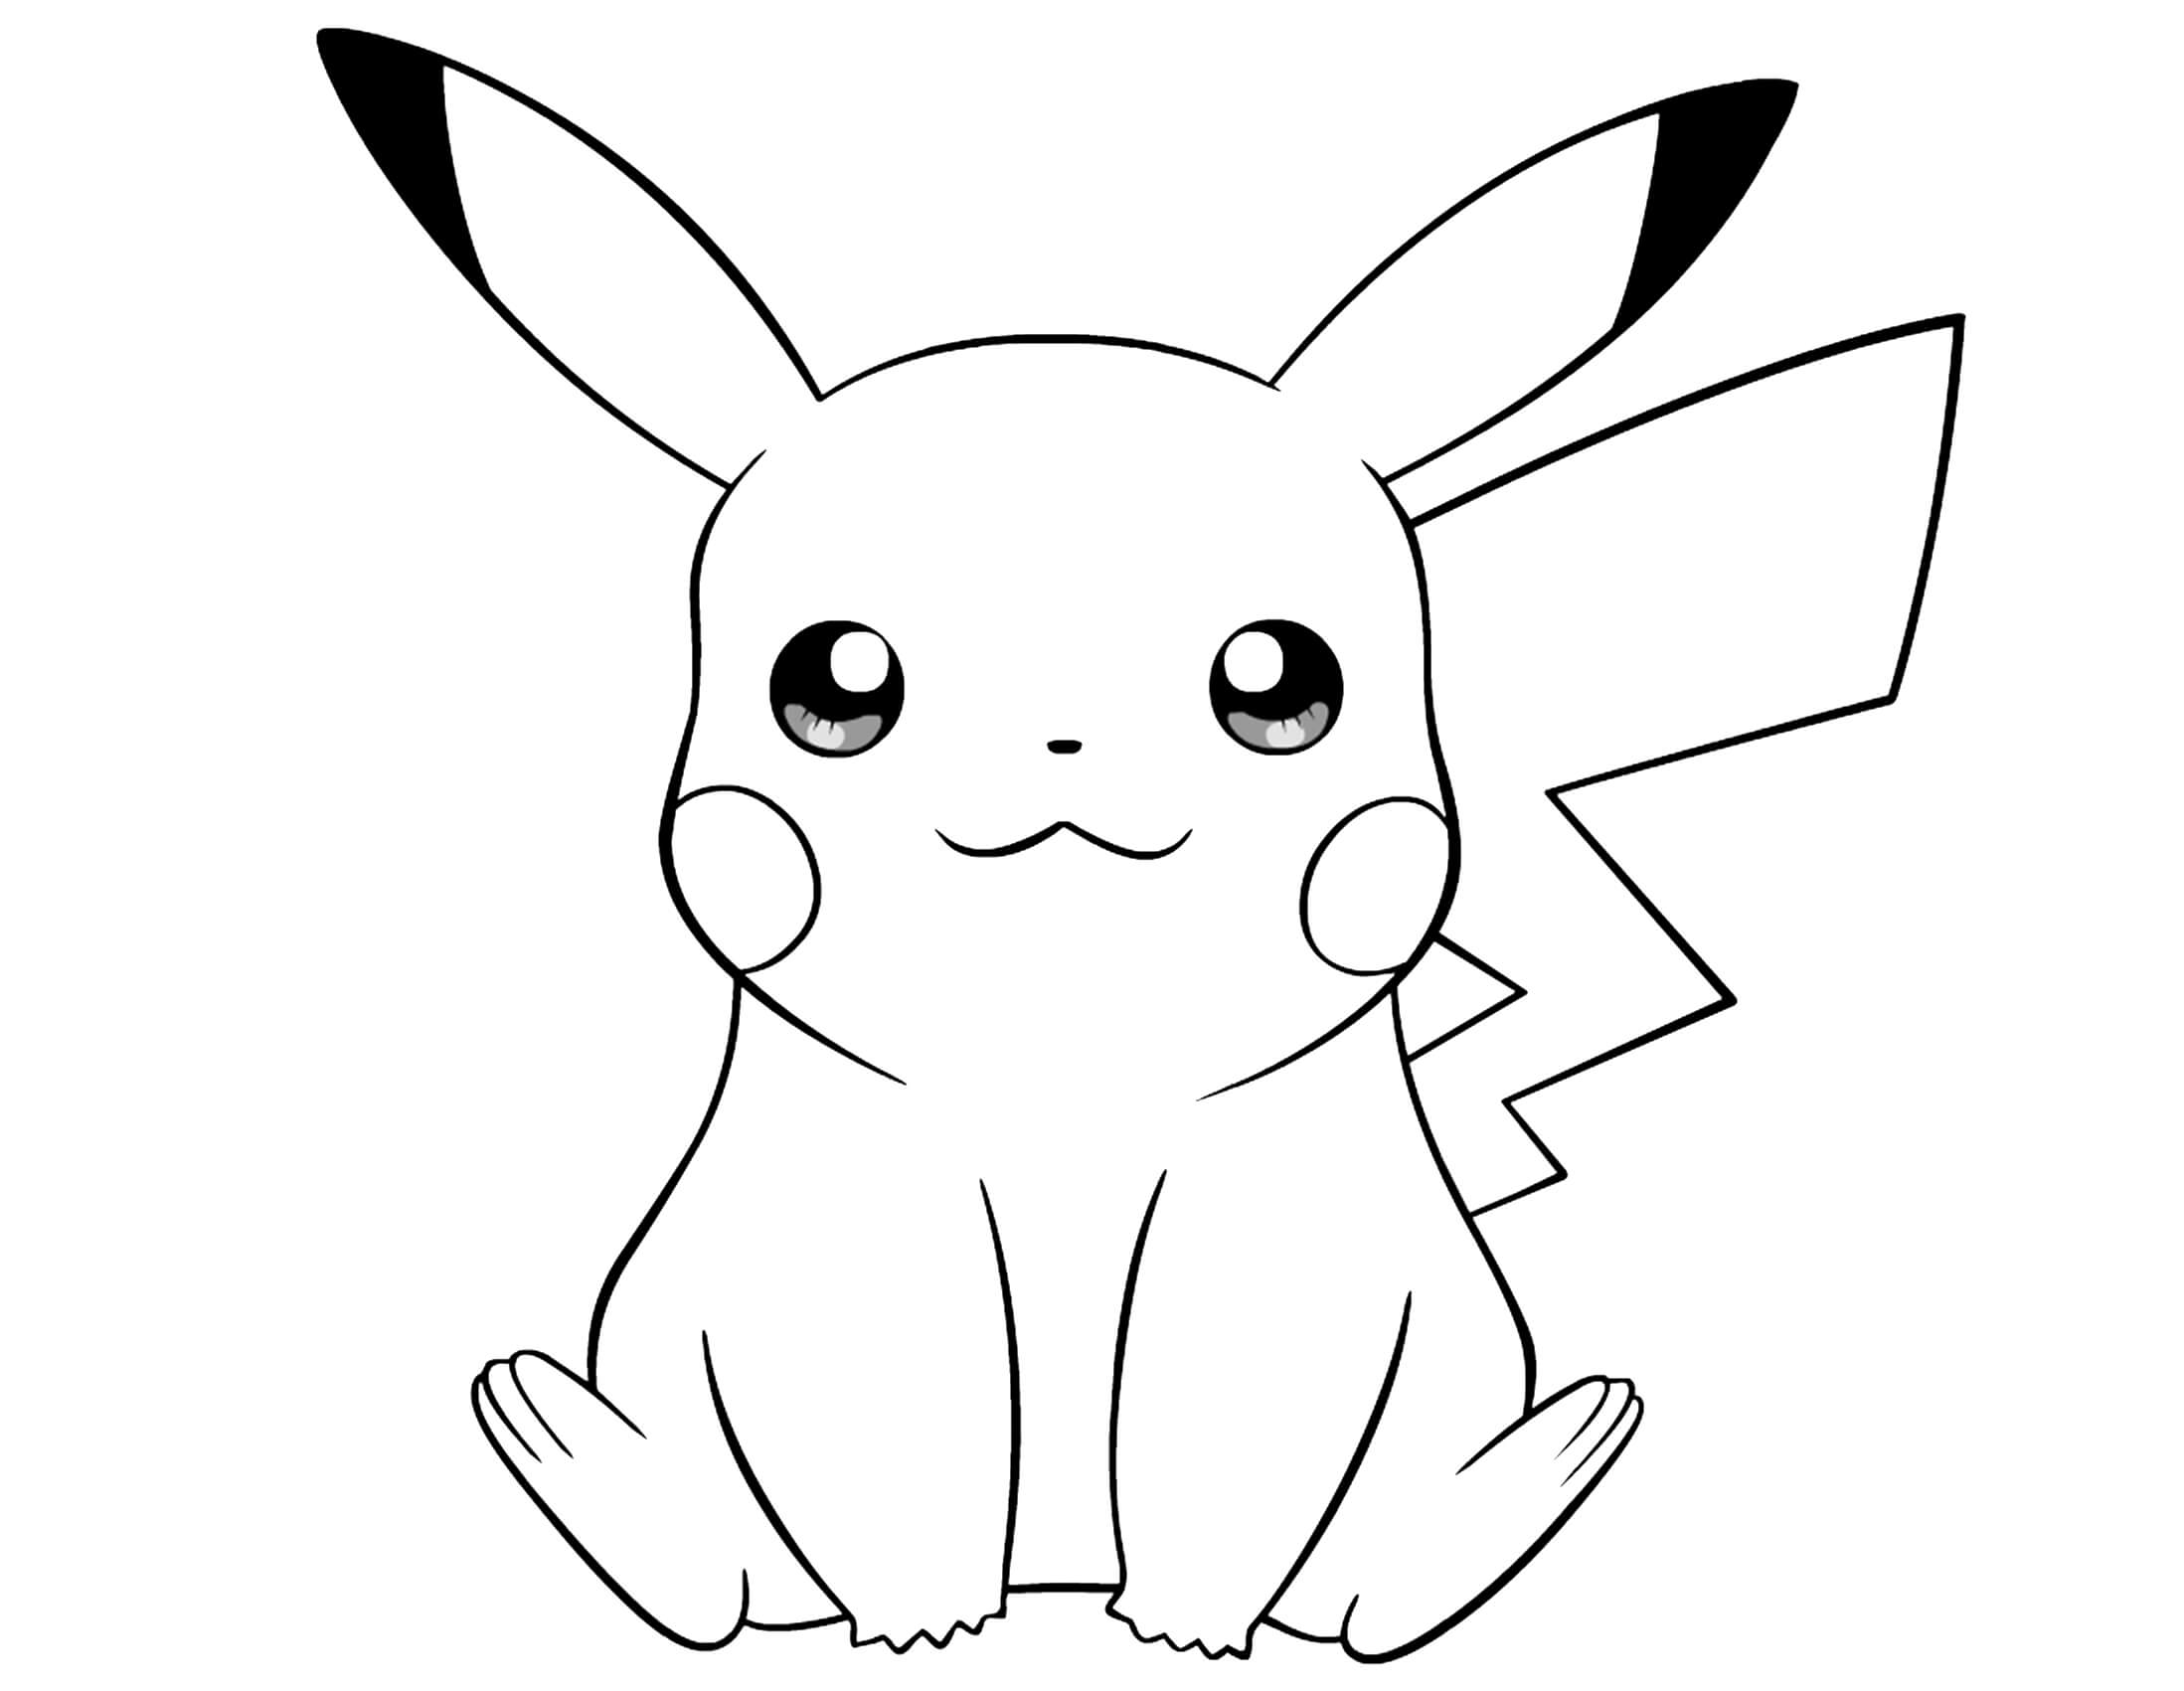 pikachu face coloring page pikachu printable coloring pages coloring pages pikachu coloring face page